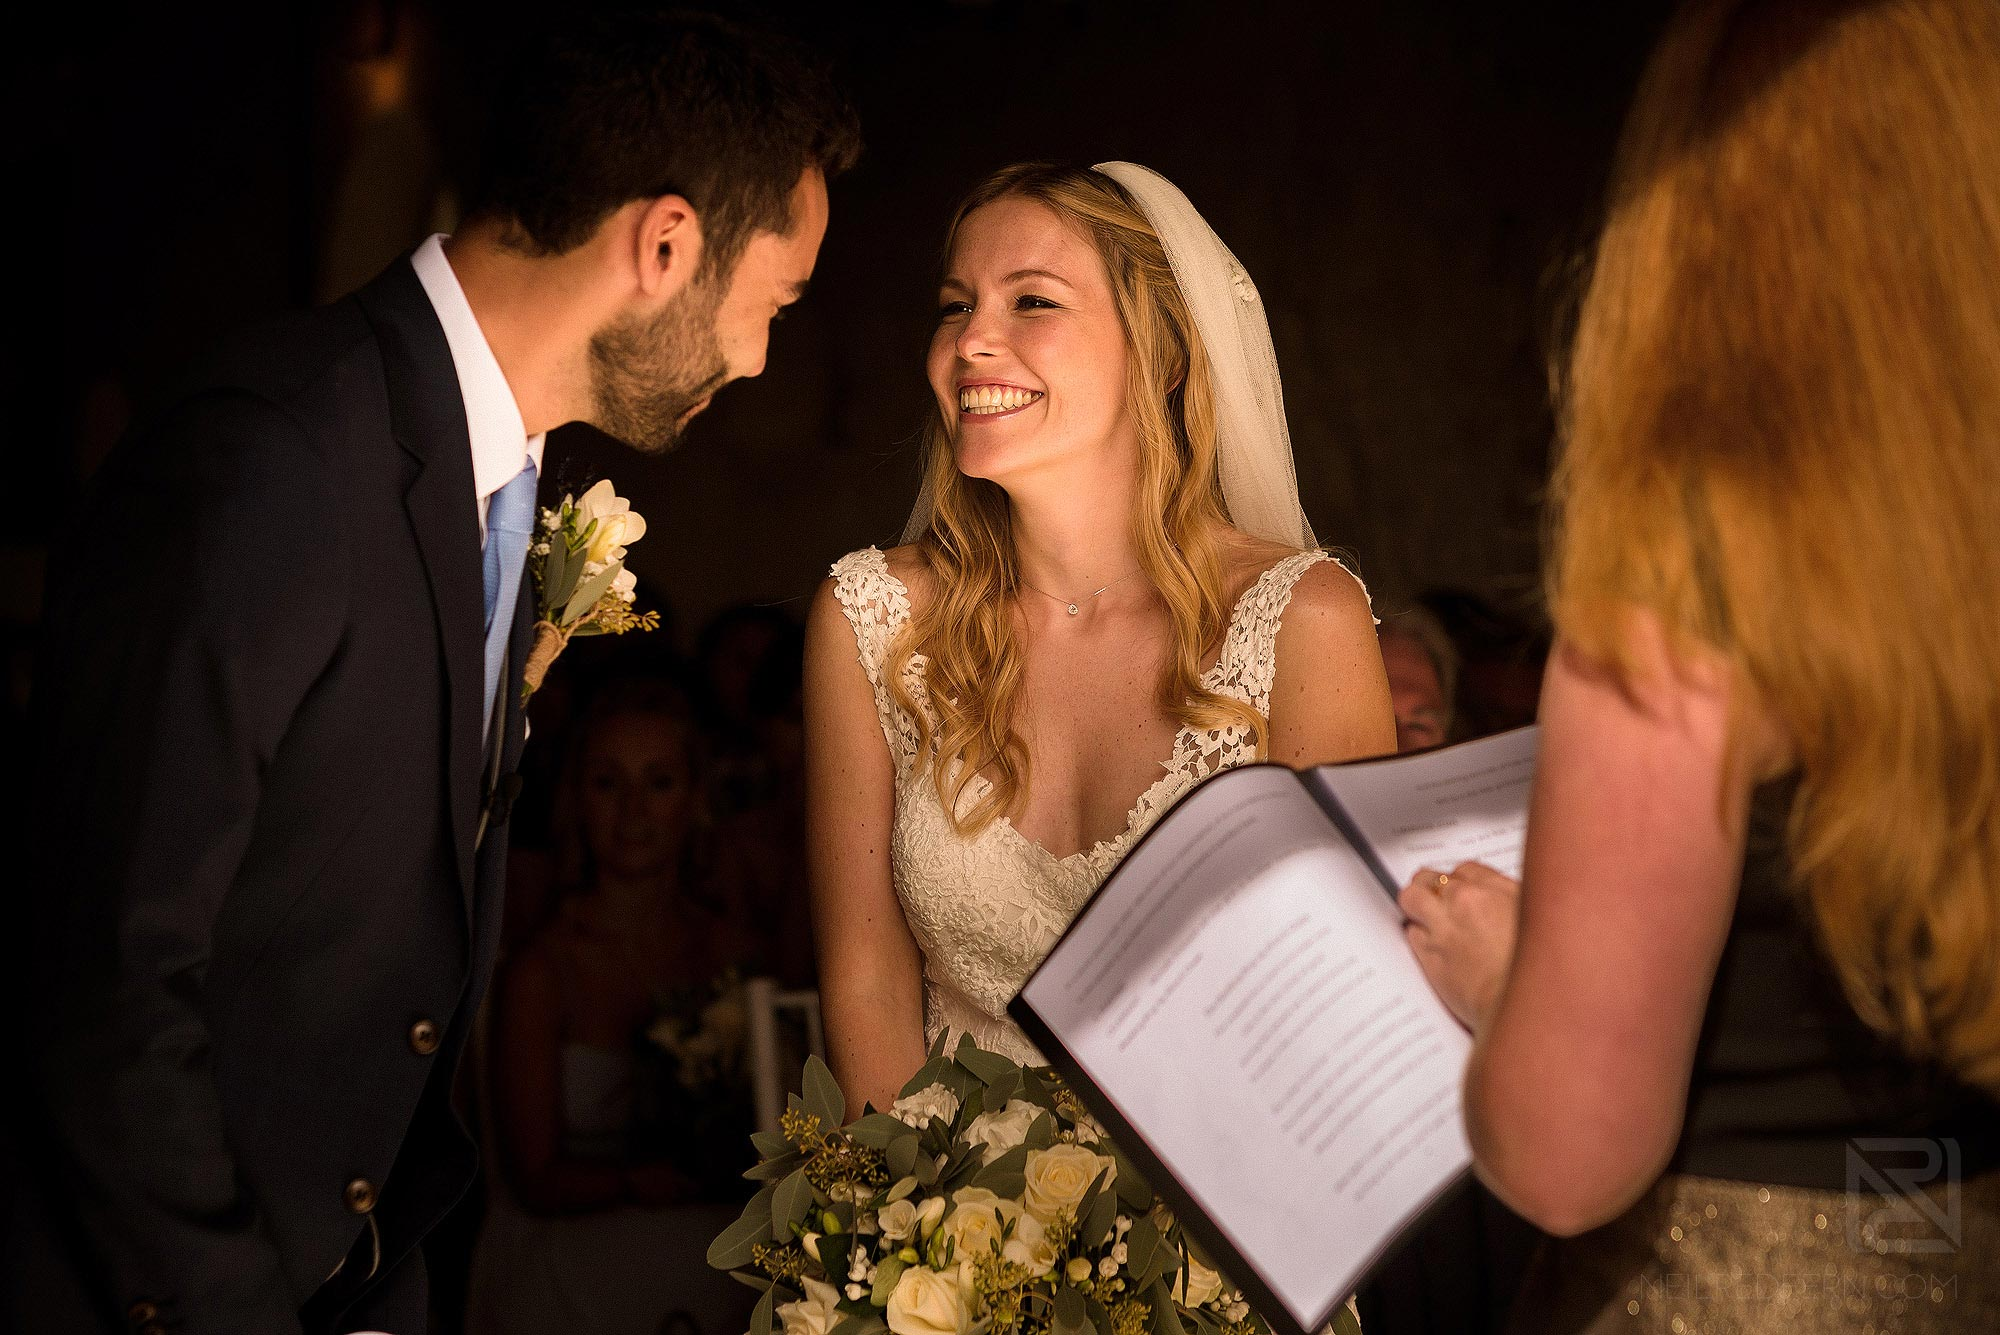 emotional moment between bride and groom during Chateau Soulac wedding ceremony